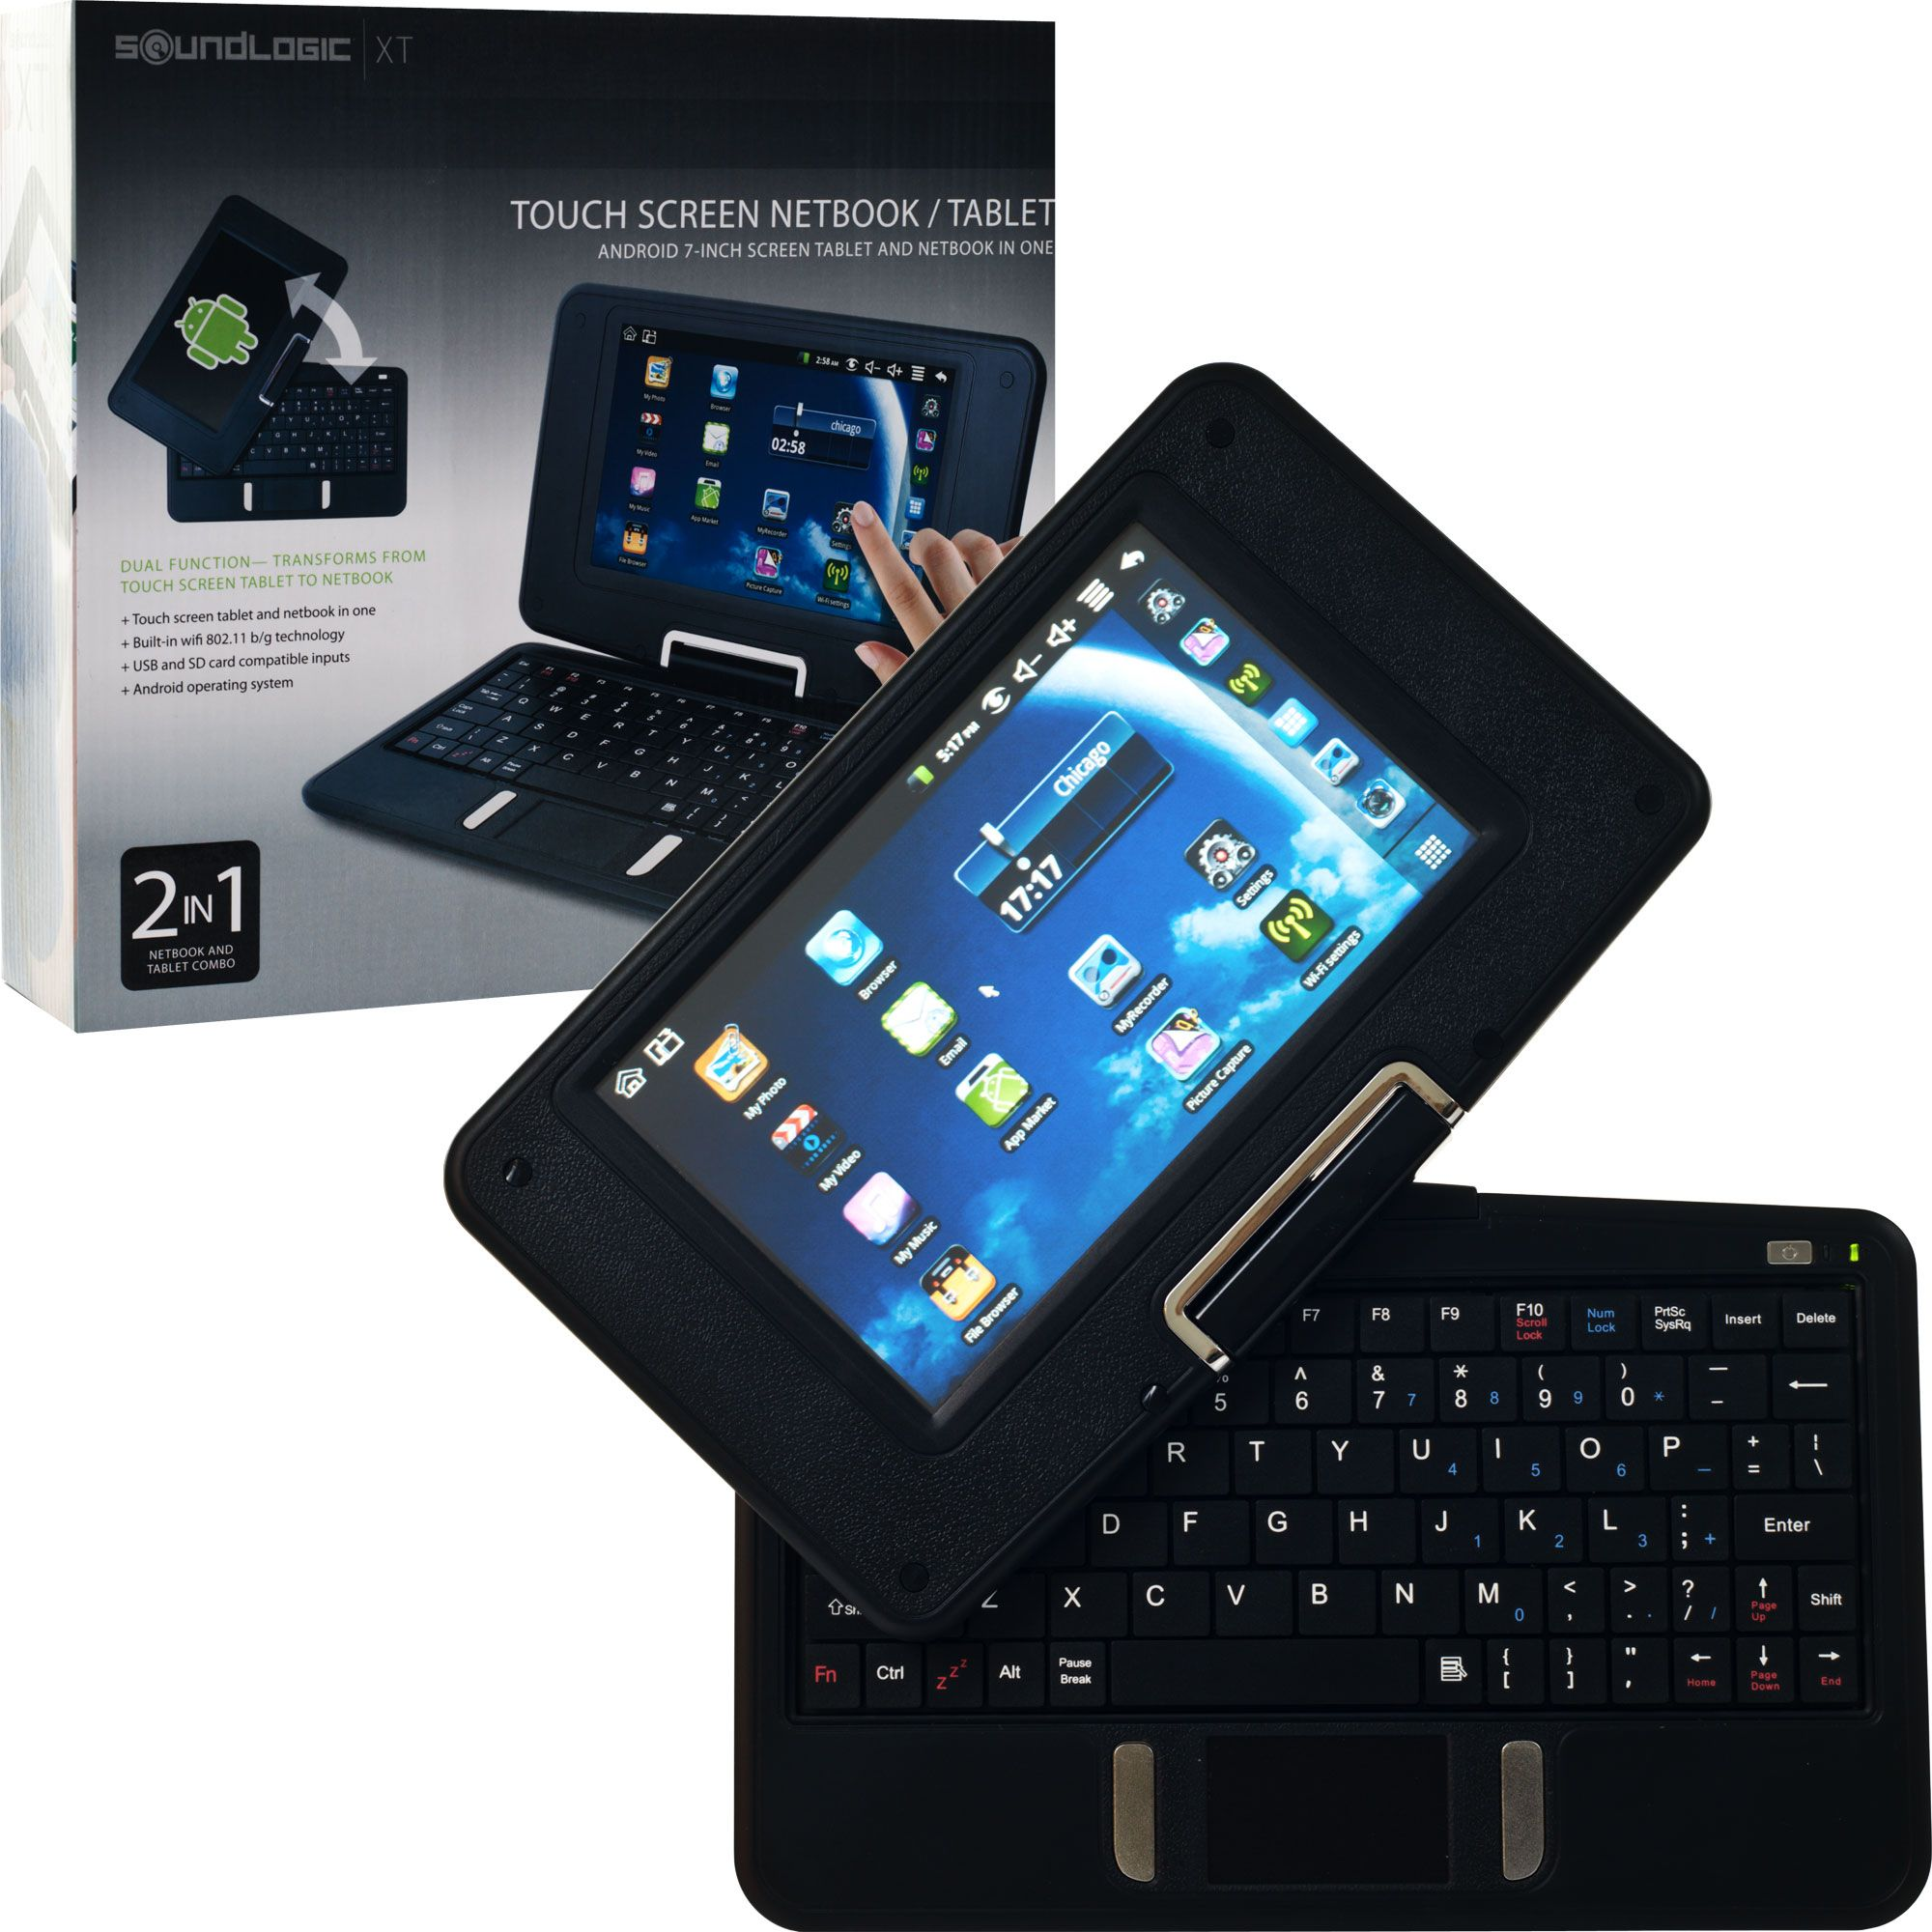 Android 2.3 7 inch 2 in 1 Swivel Netbook and